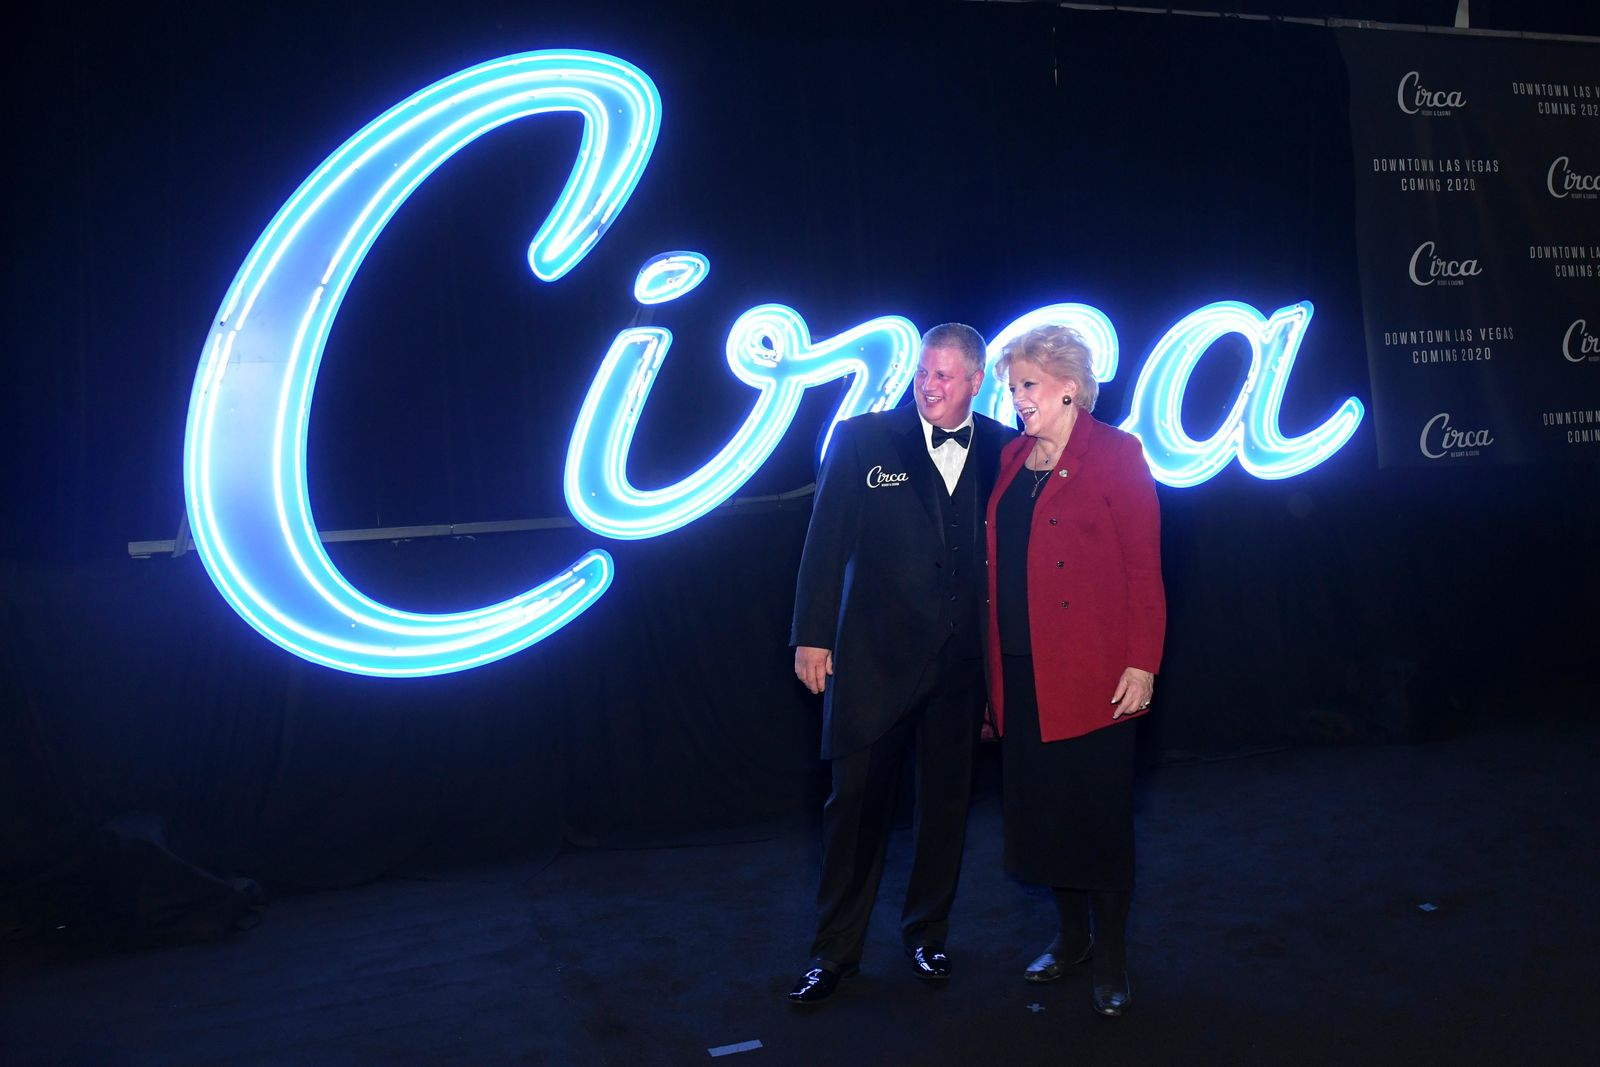 Derek Stevens and Las Vegas Mayor Carolyn Goodman pose for photos during the unveiling of Stevens' new project for Fremont Street, Circa Resort & Casino, Thursday, Jan 10, 2019, at the Downtown Las Vegas Events Center. (Sam Morris/Las Vegas News Bureau)